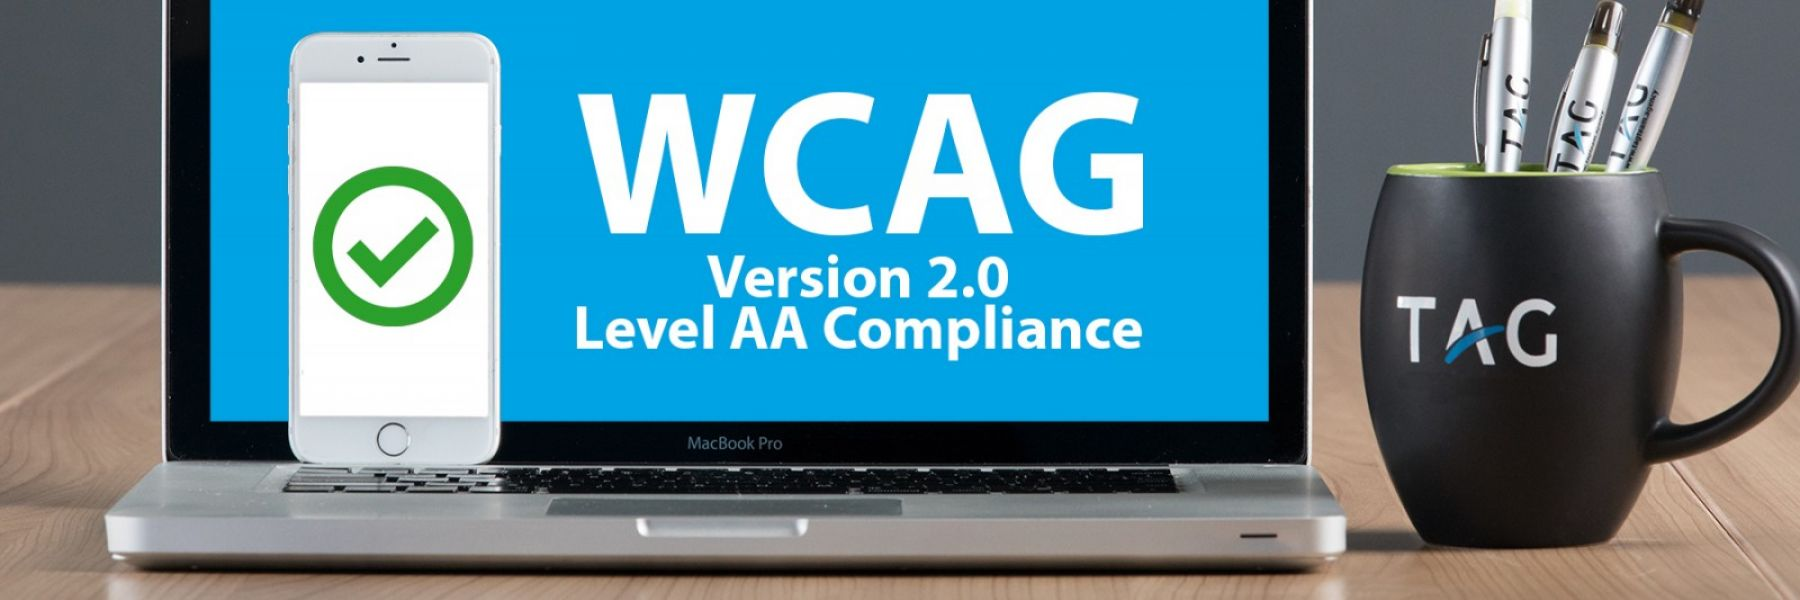 WCAG 2.0 AA compliance image in the TAG brand displayed on a desktop computer